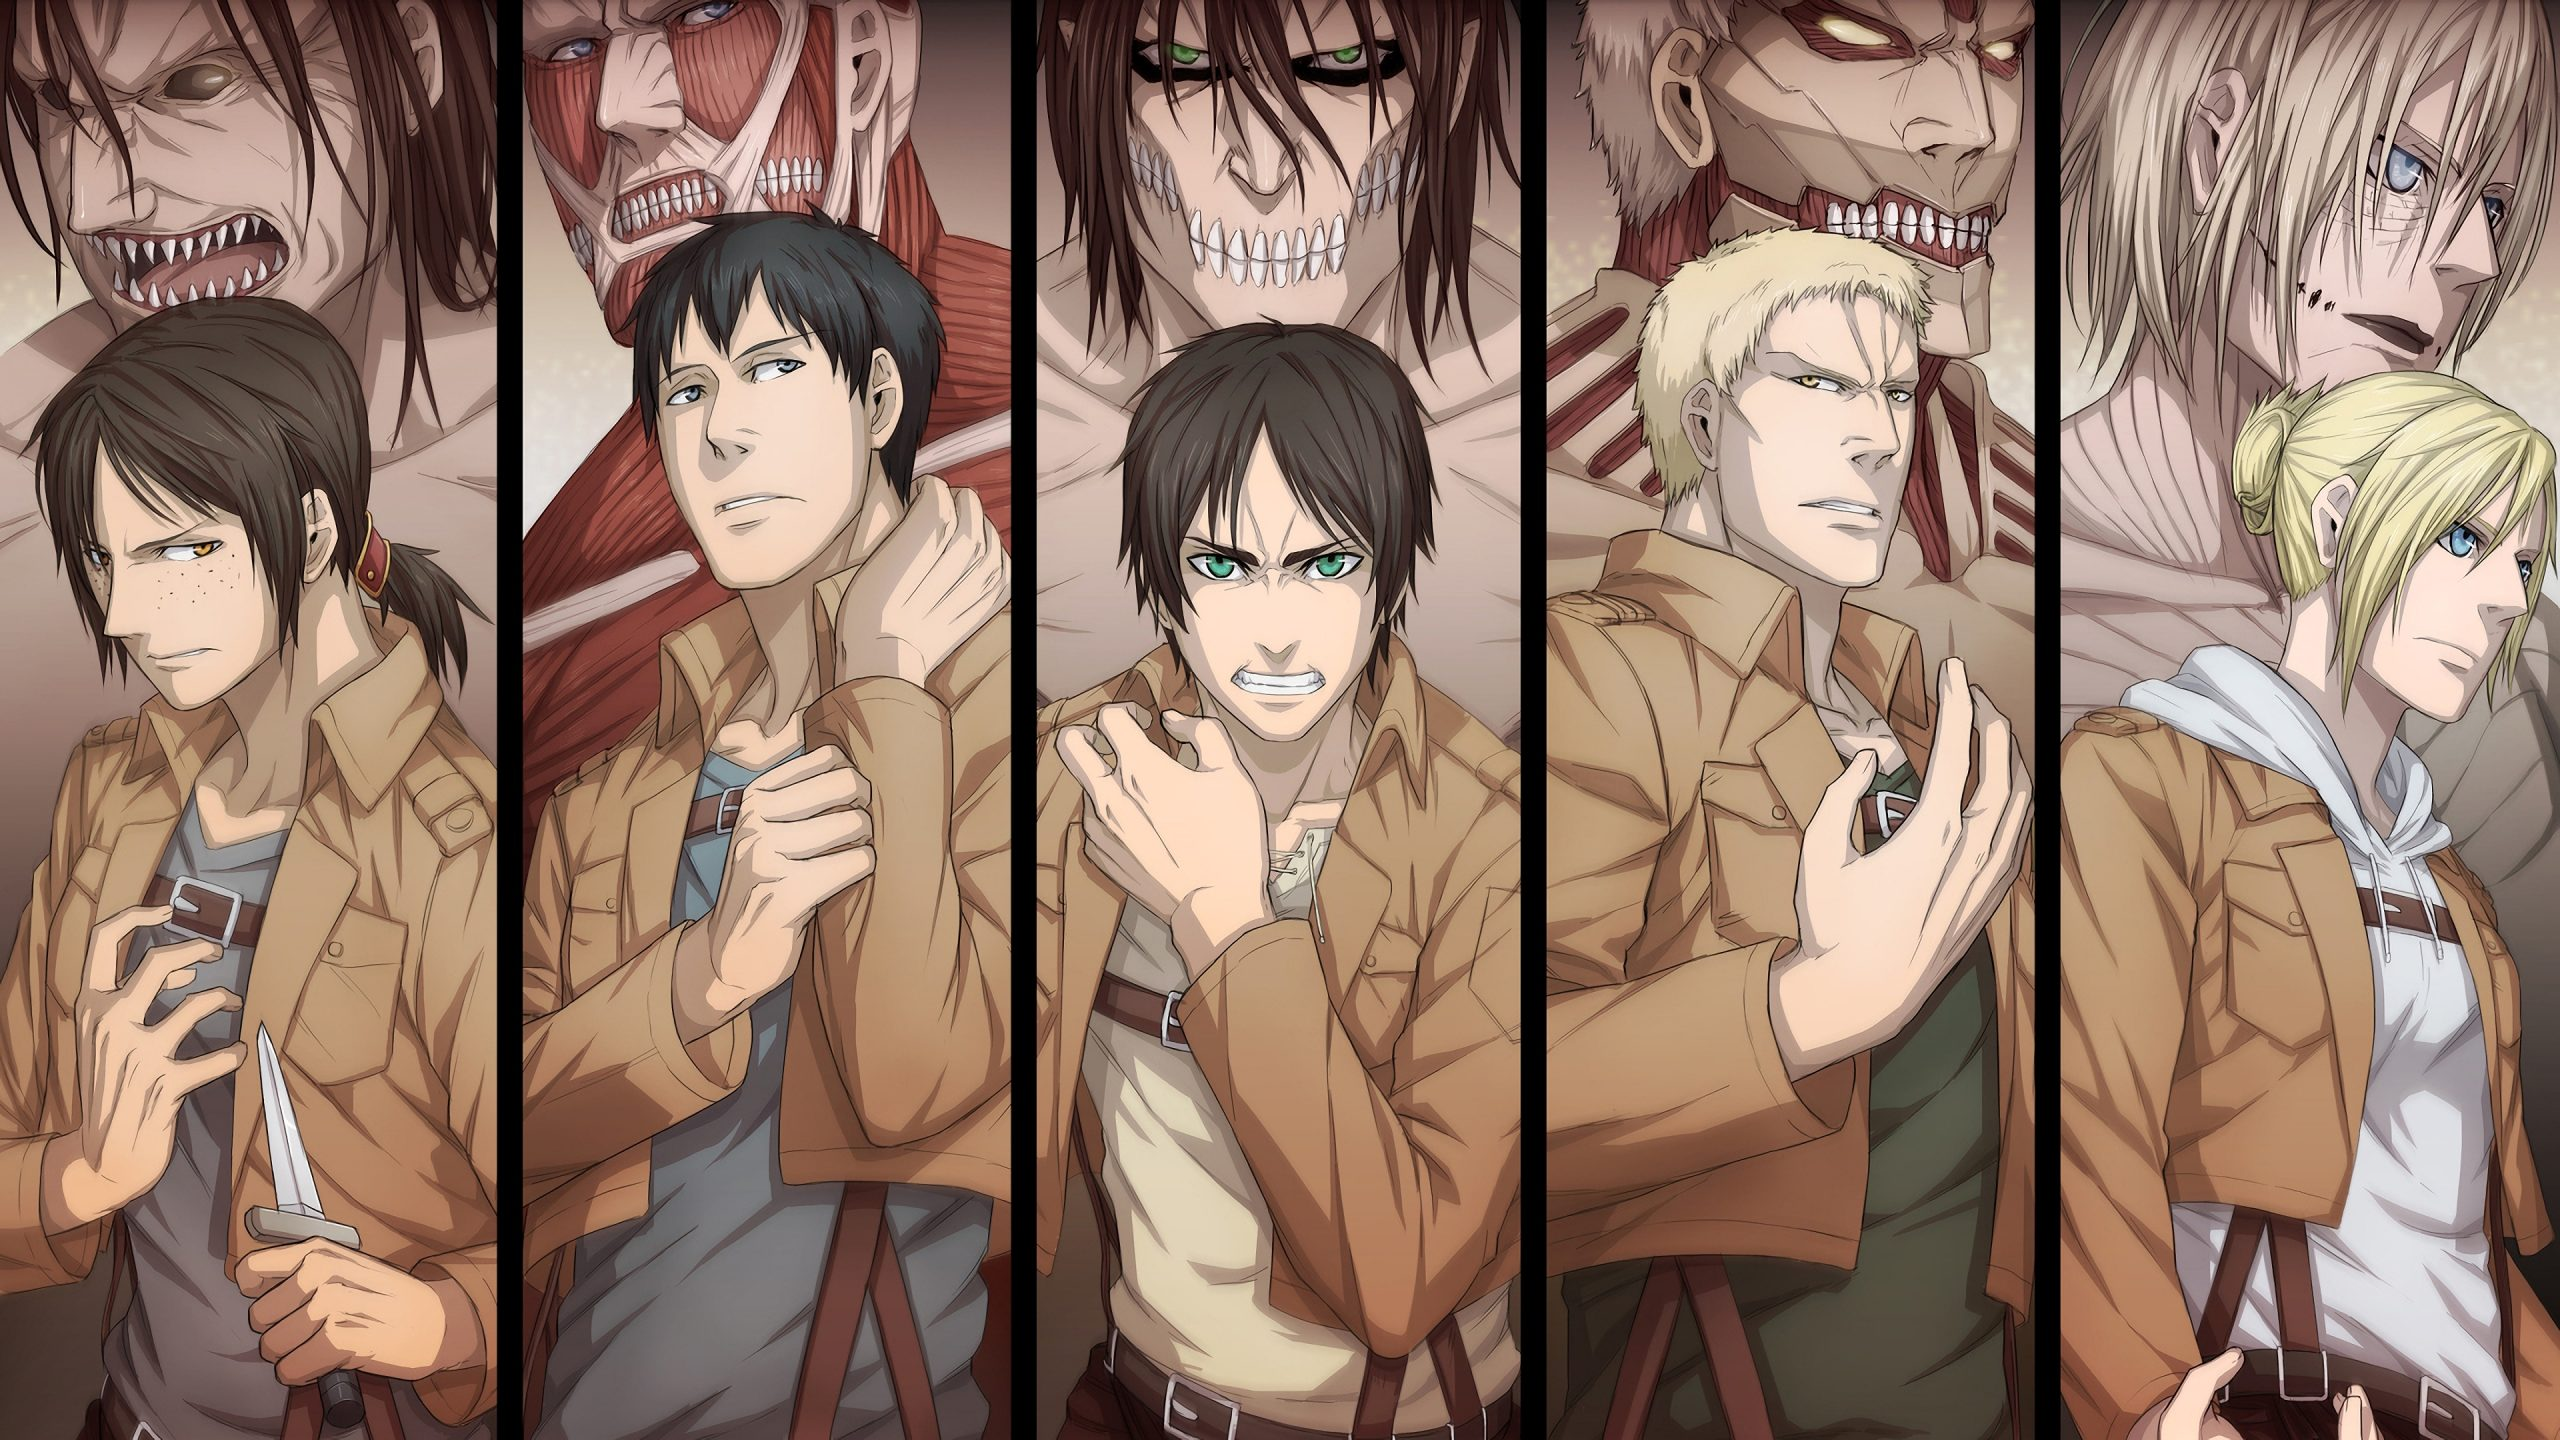 Attack on Titan Chapter 139 Release Date, Leaks, Spoilers, Scans and Read Anime Online - Block Toro